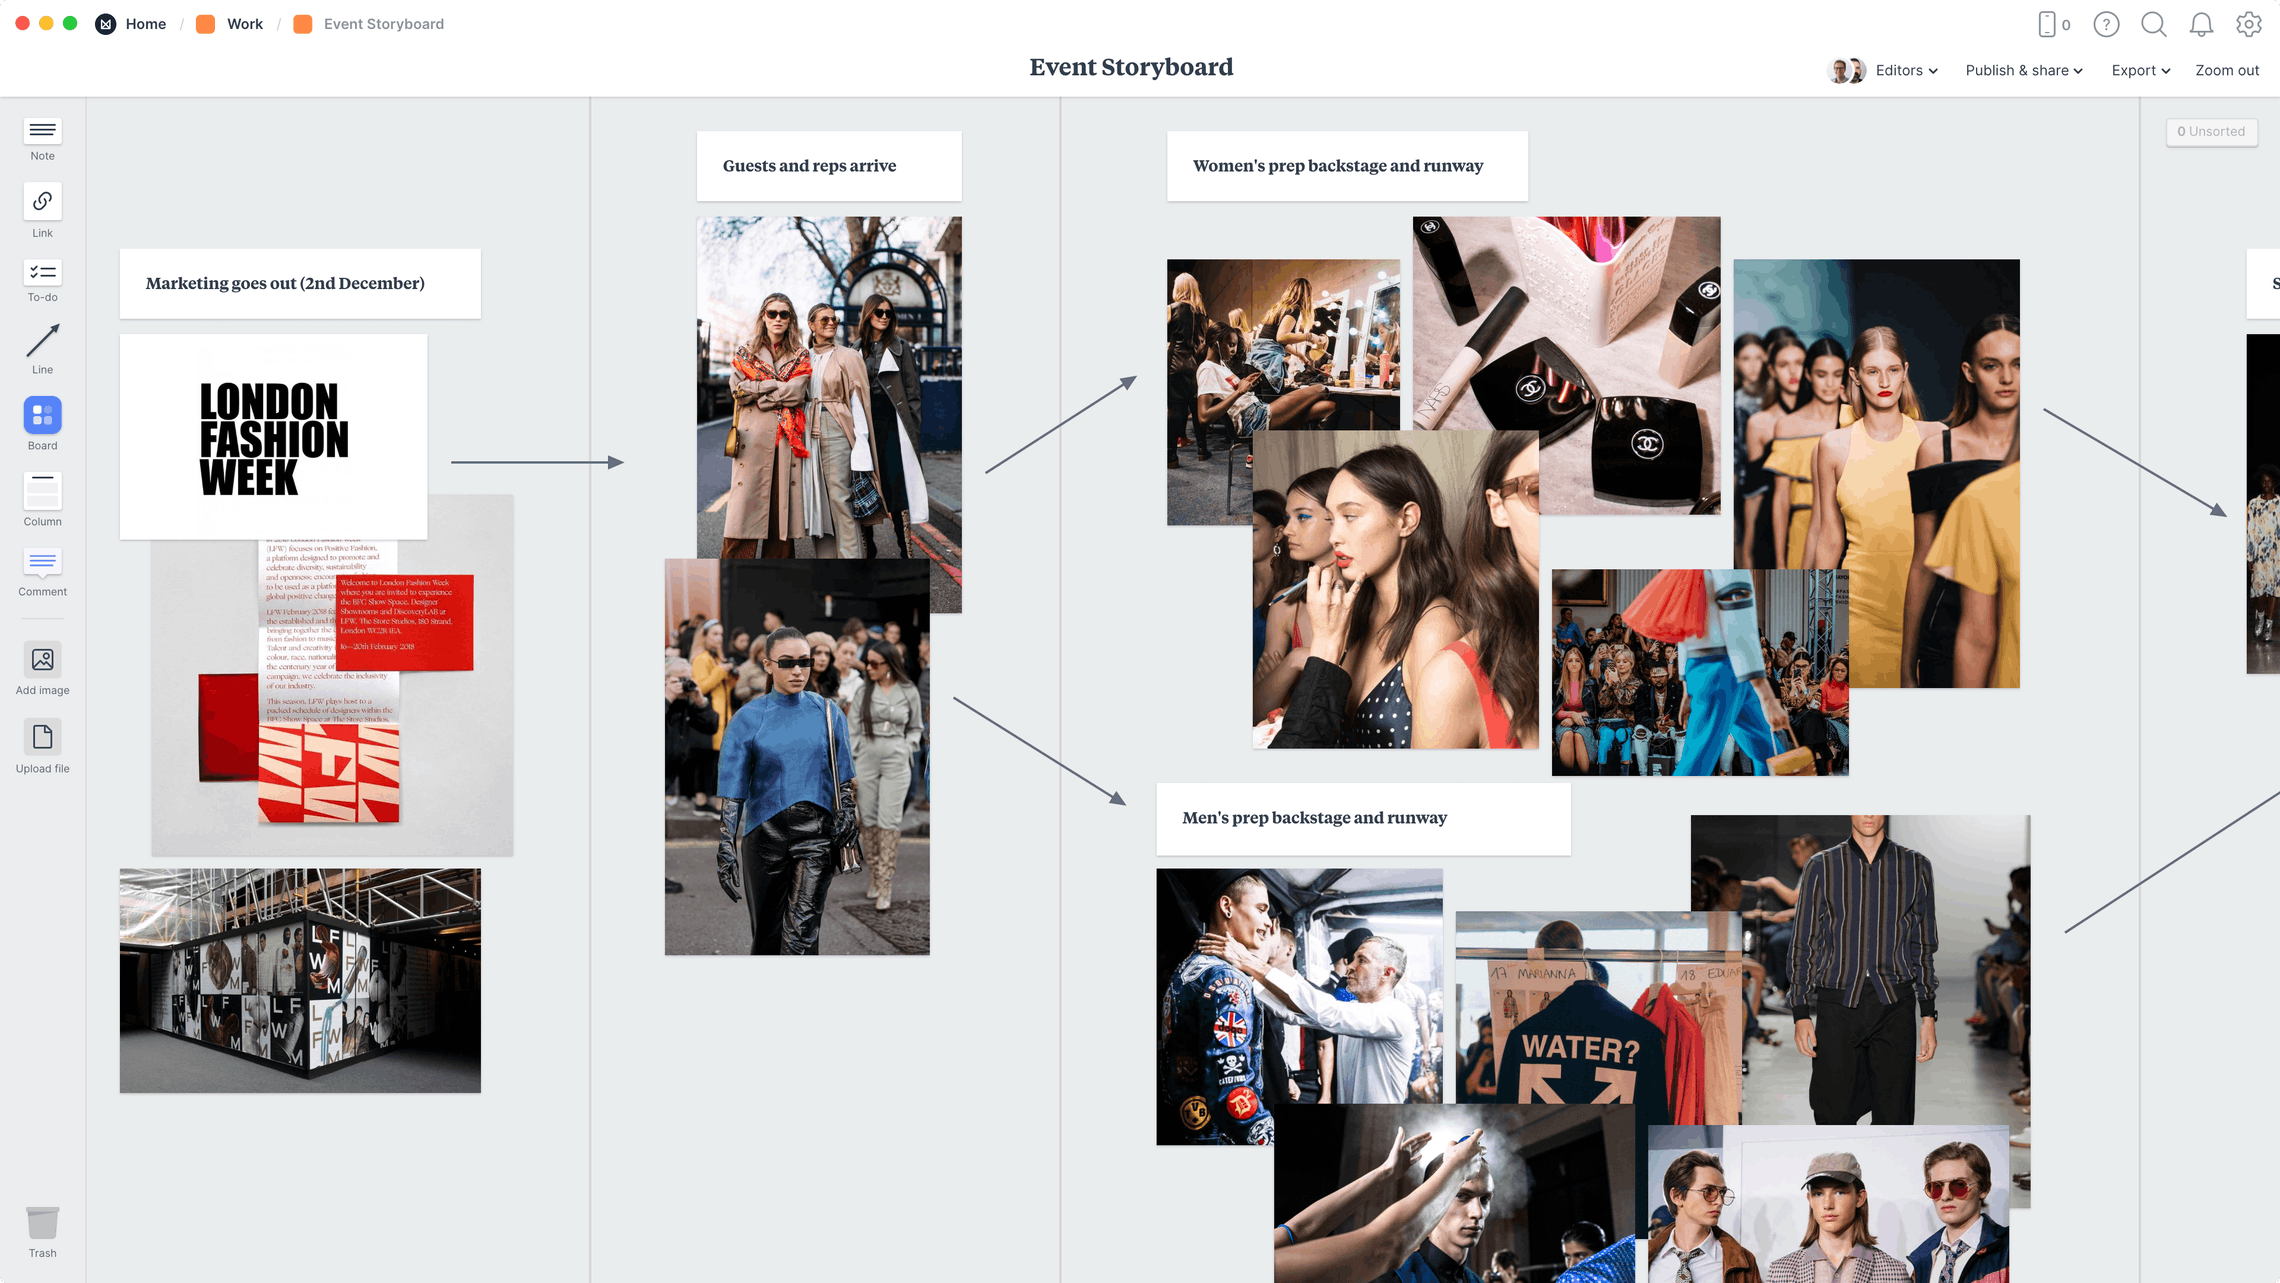 Event Storyboard Template, within the Milanote app